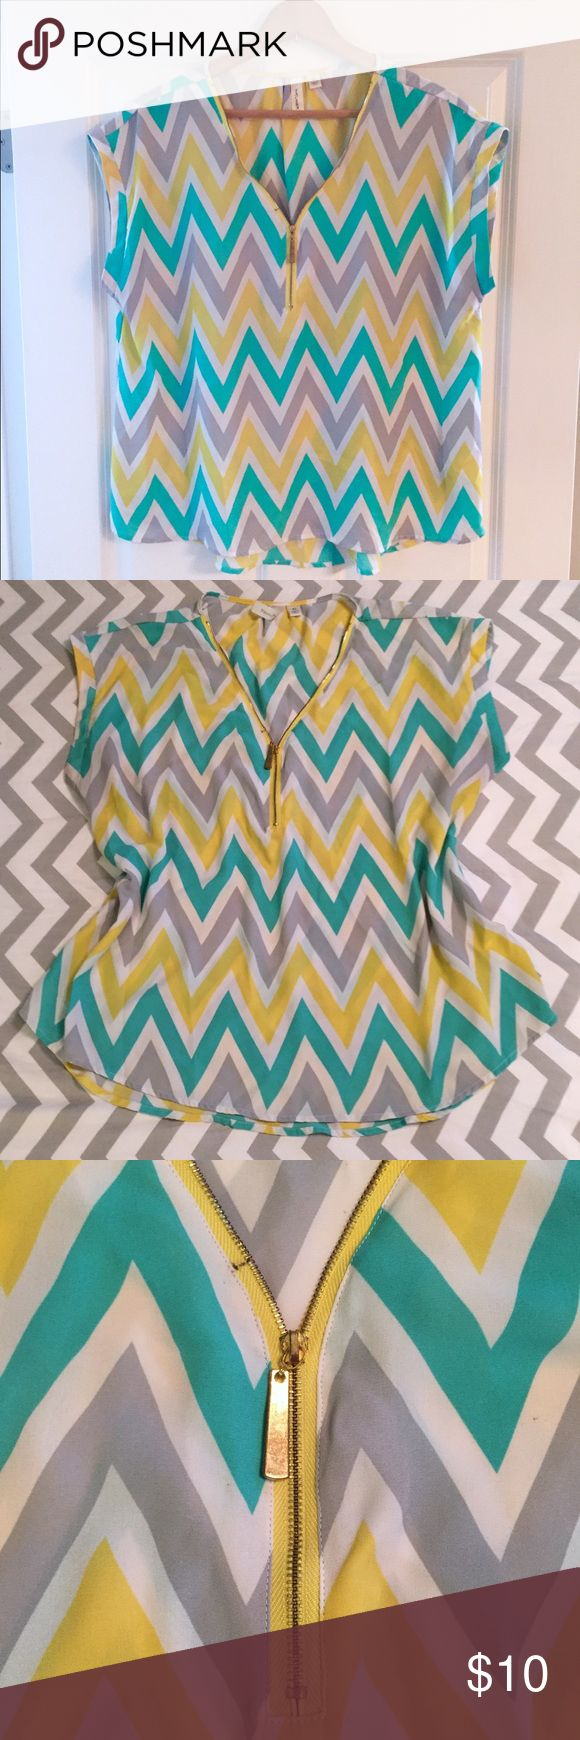 Tacera Chevron Top Sheer top with large chevron pattern in yellow, turquoise, gray and white. Gold zipper detail around neckline. Zipper goes halfway up and then has a stop as shown in picture 4. There is a small ink mark along the zipper as shown in the pictures, but otherwise Top is in perfect condition. Bust is 24, length is 26. Tacera Tops